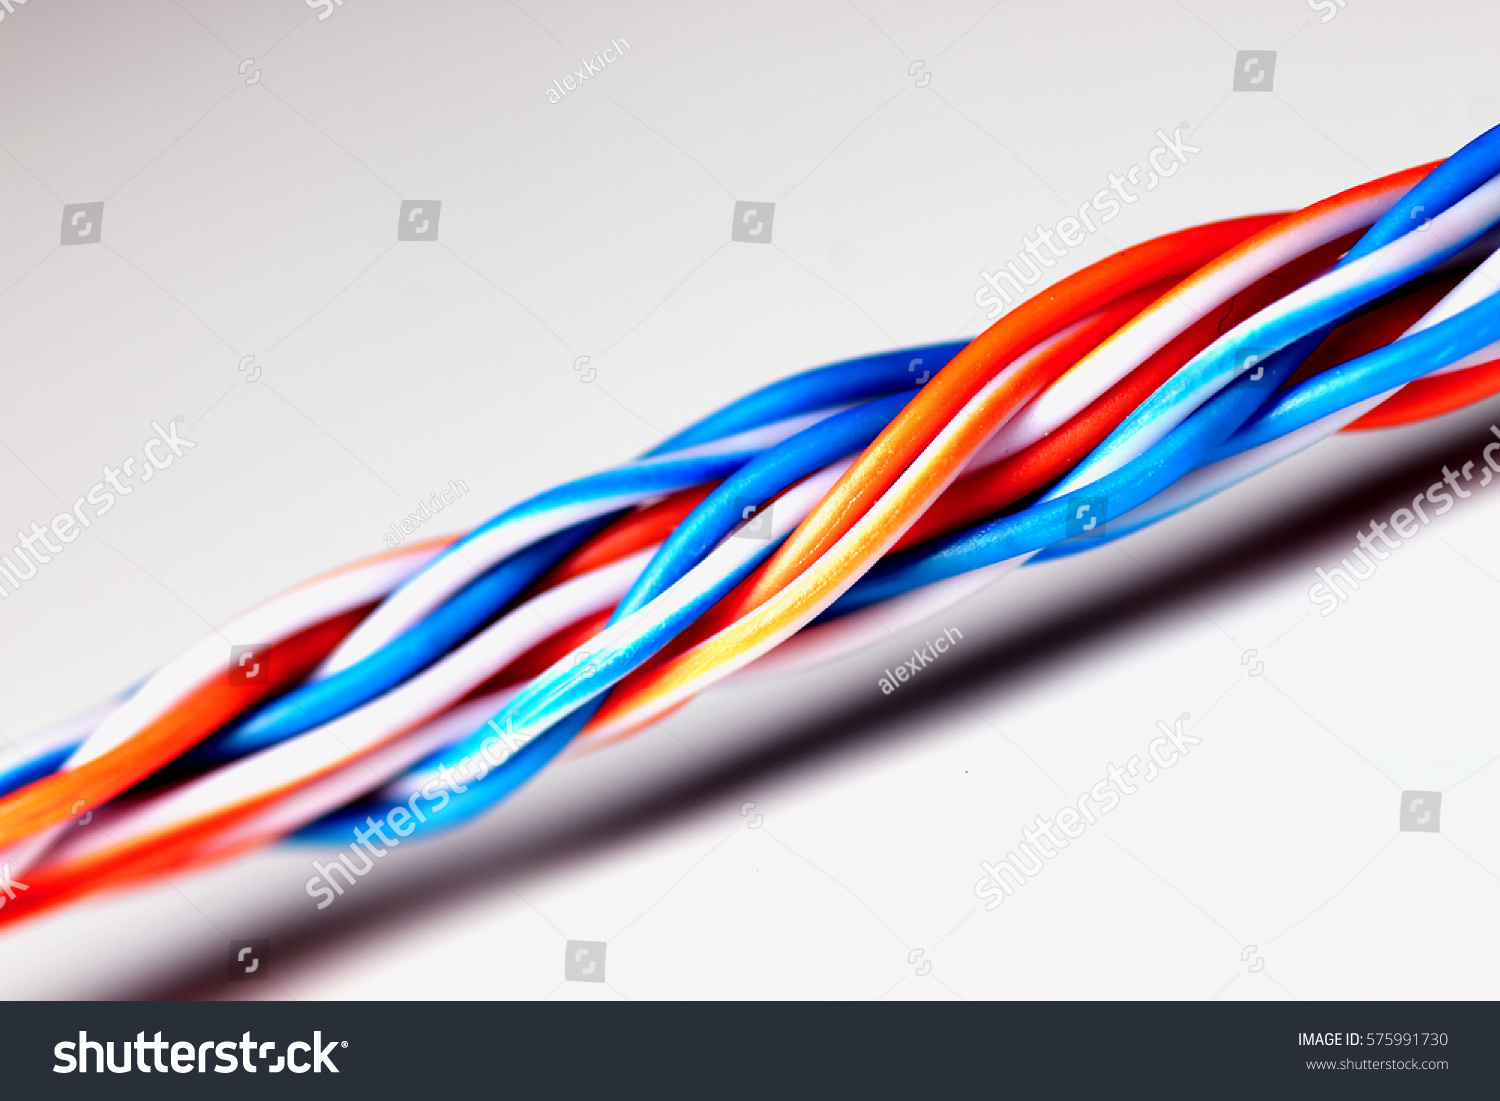 Macro Color Braided Wire Stock Photo & Image (Royalty-Free ...